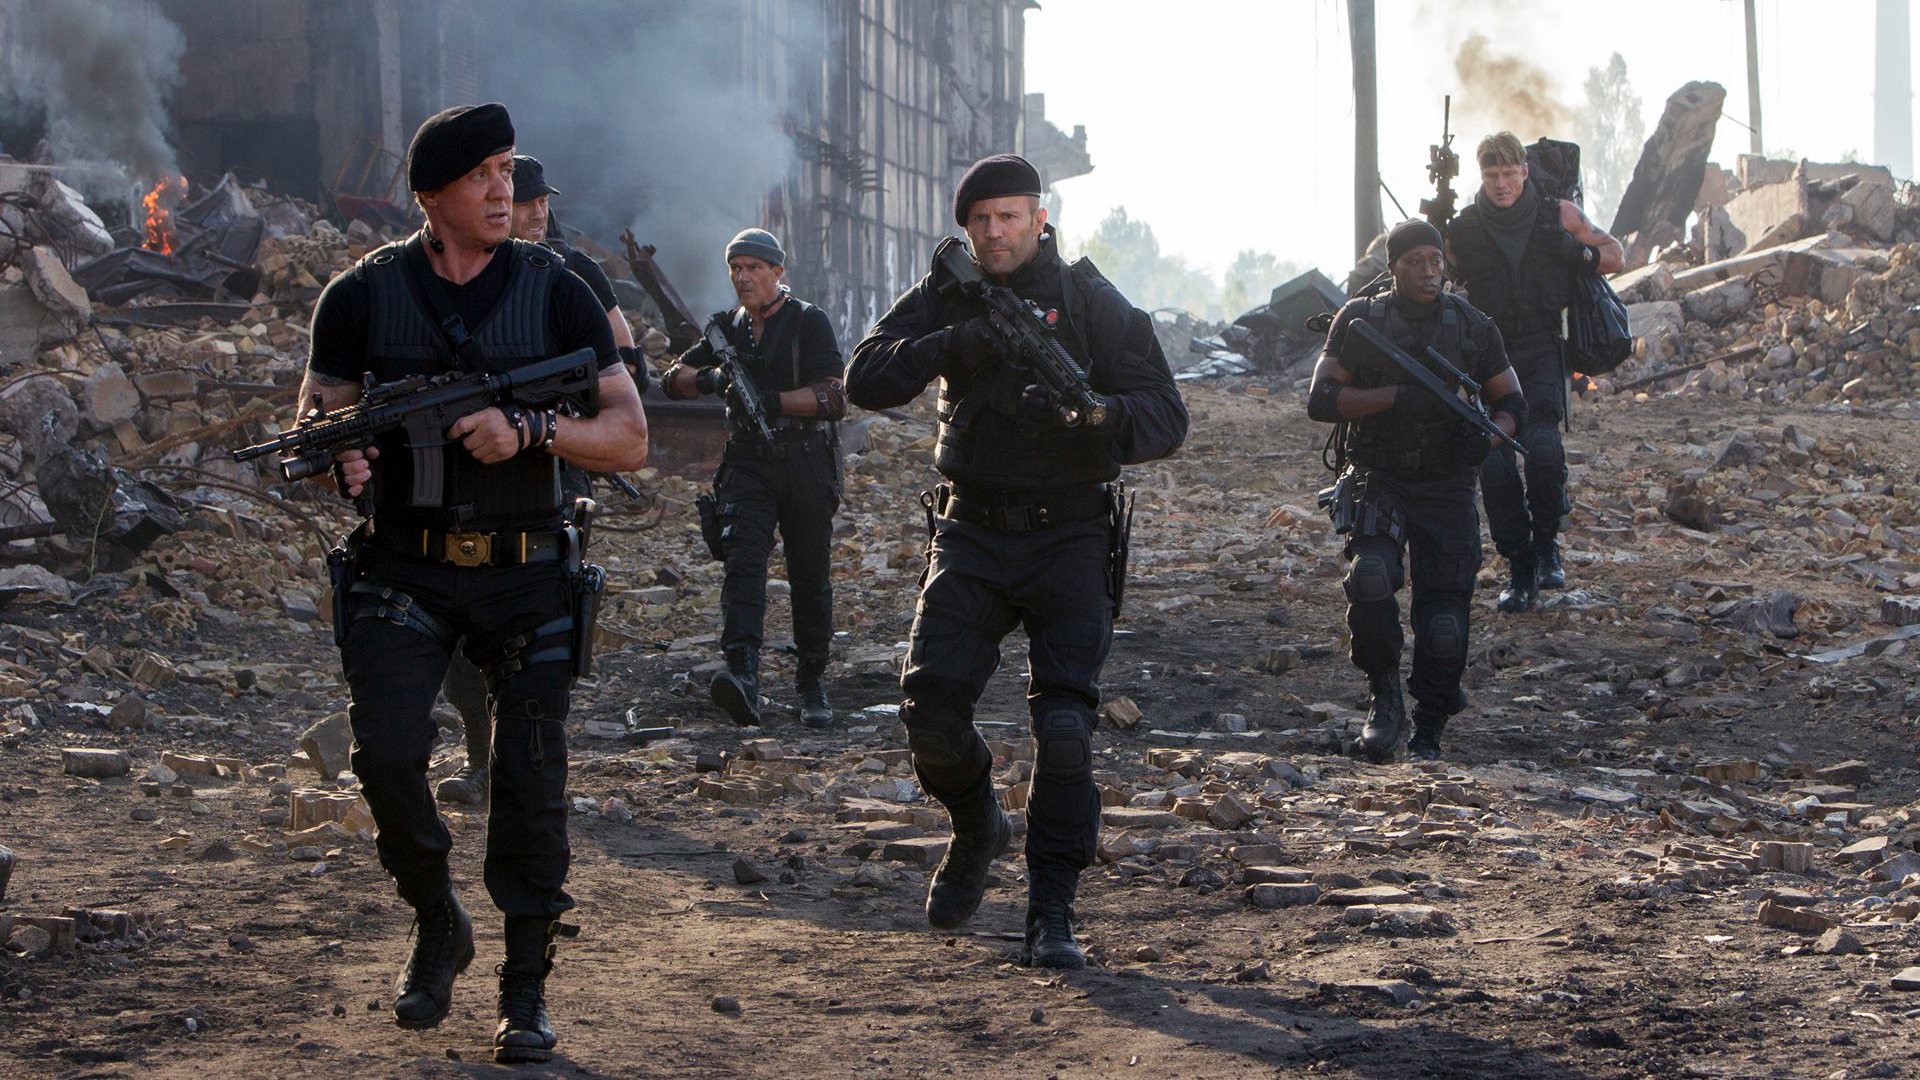 expendables 3 movie 2014 wallpaper hd